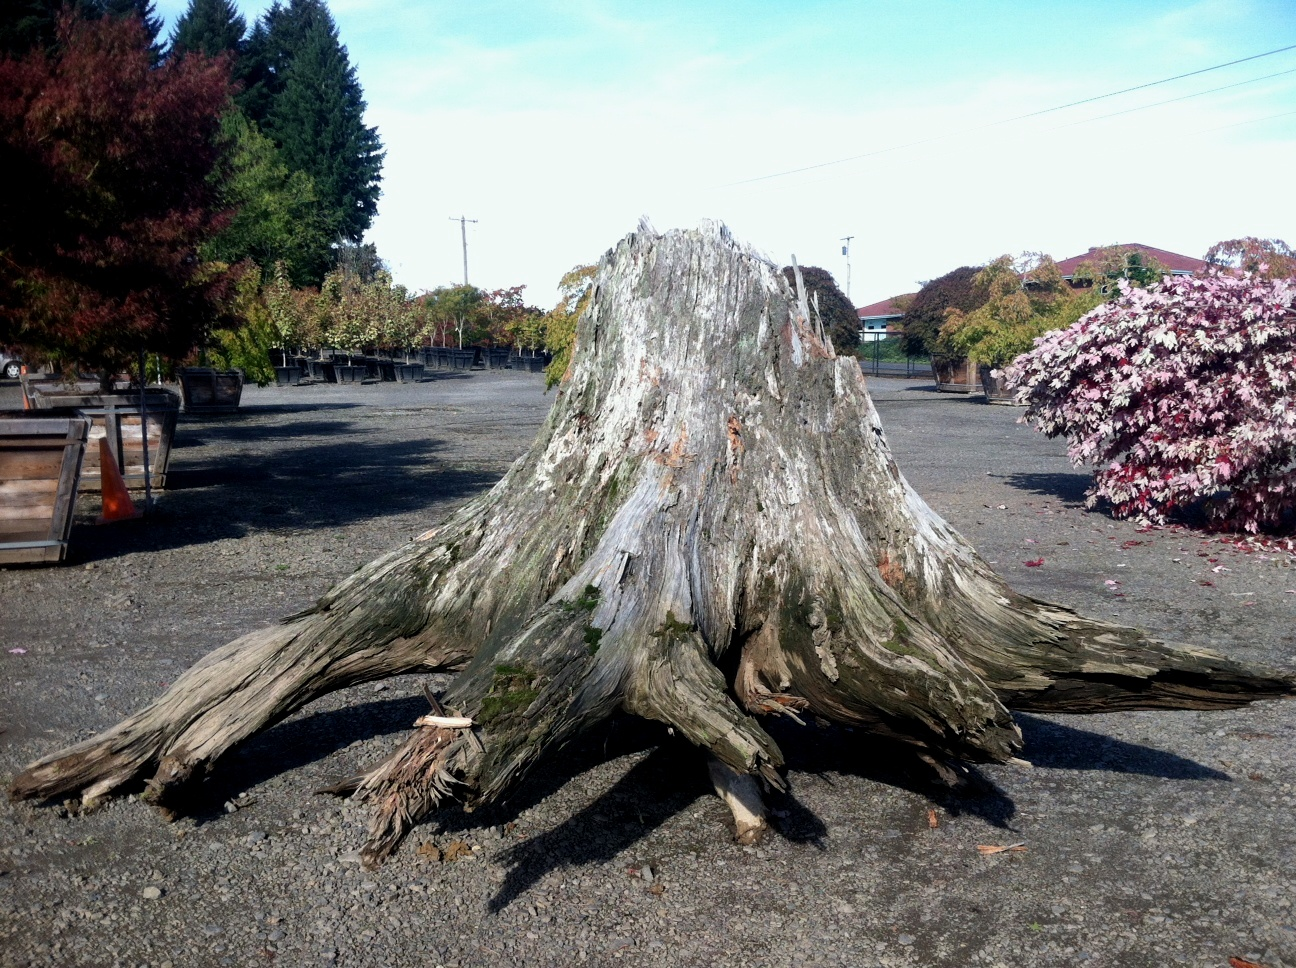 Shipping a weathered stump for a private garden